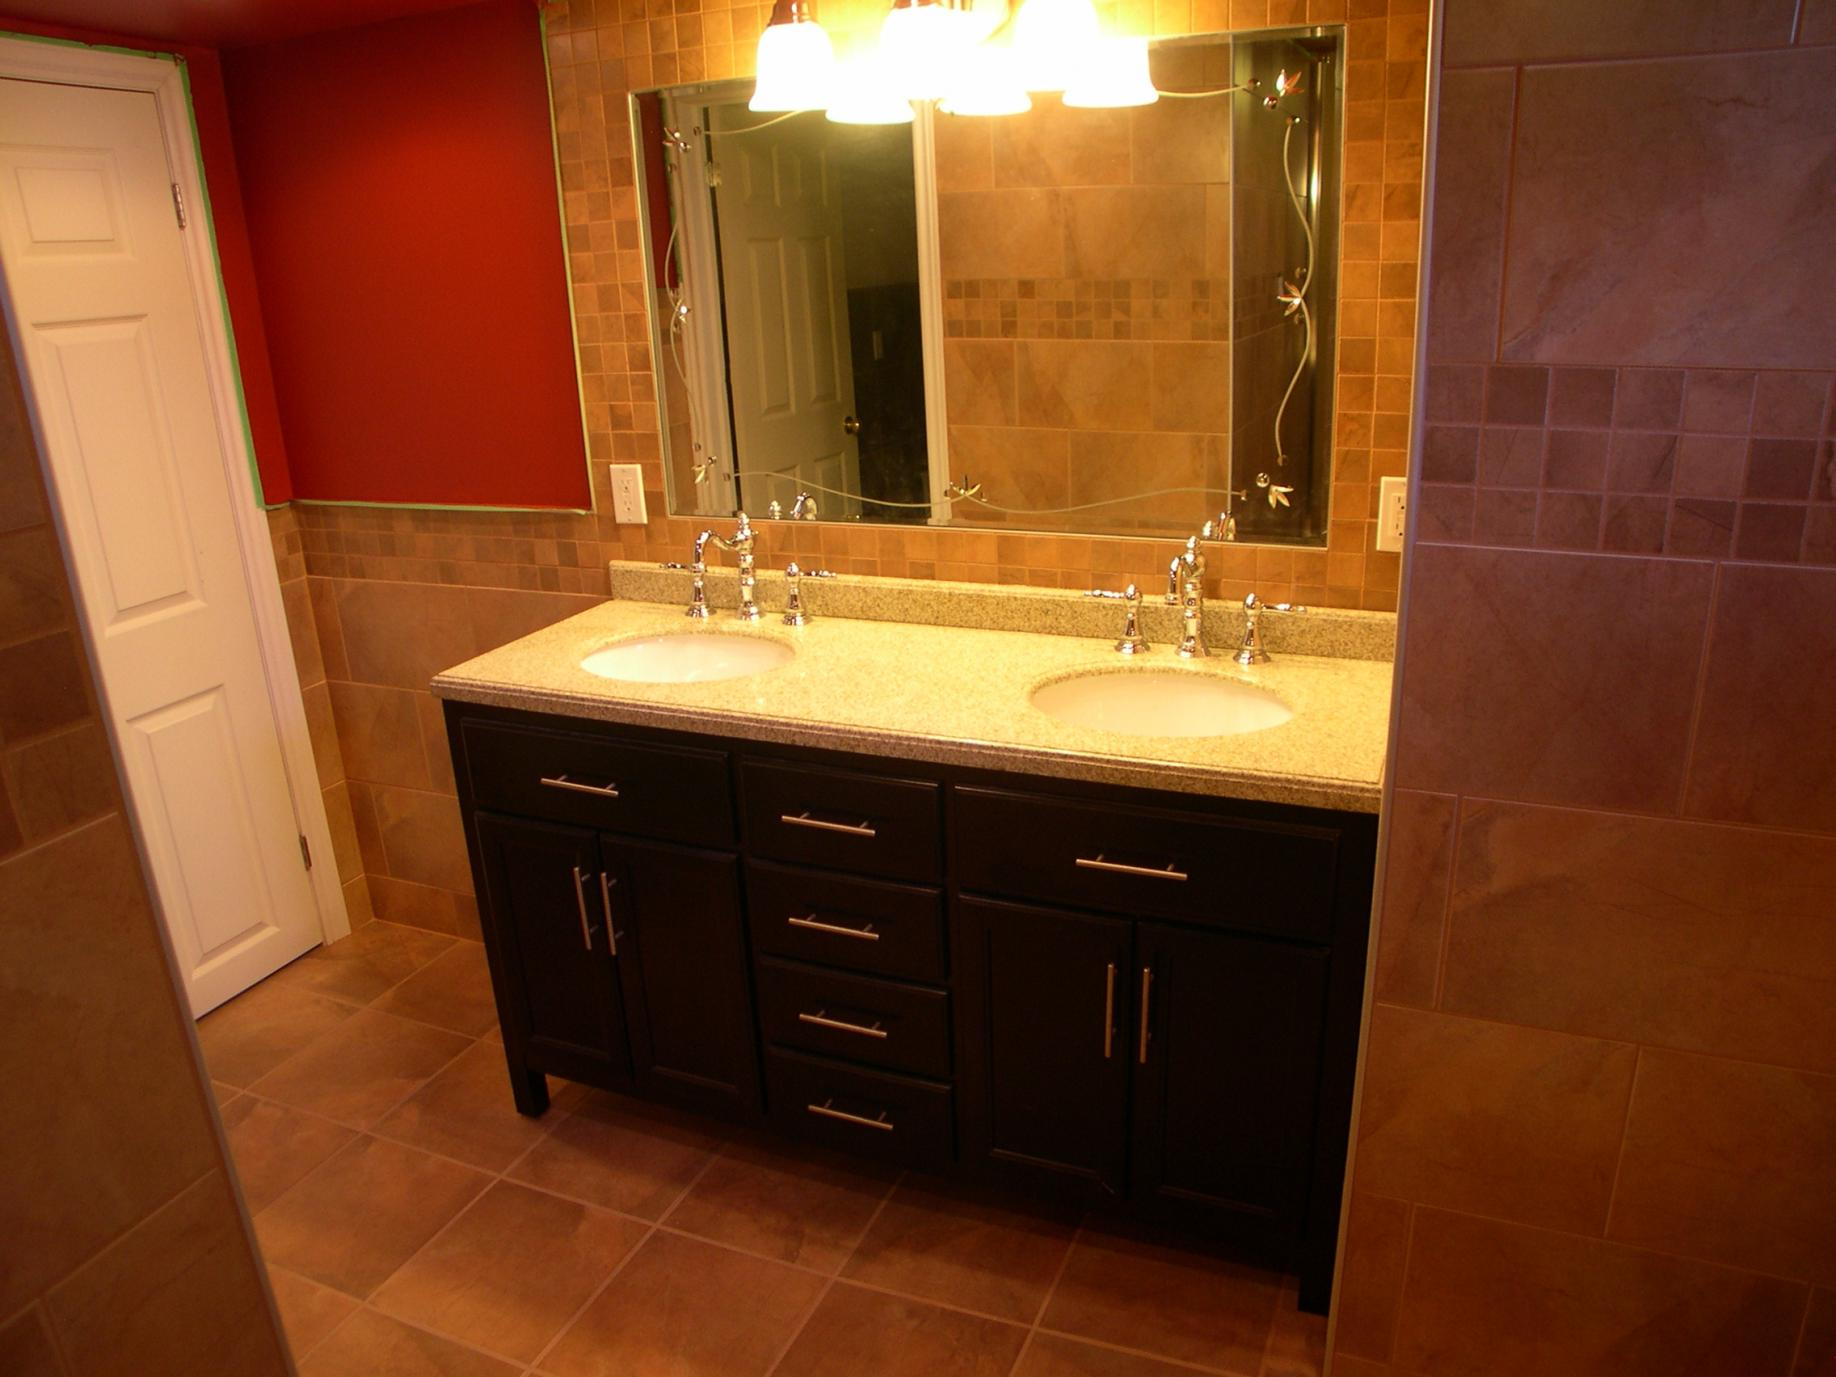 Attractive Cabinet also Mirror and Wall Lamps For Basement Bathroom Ideas